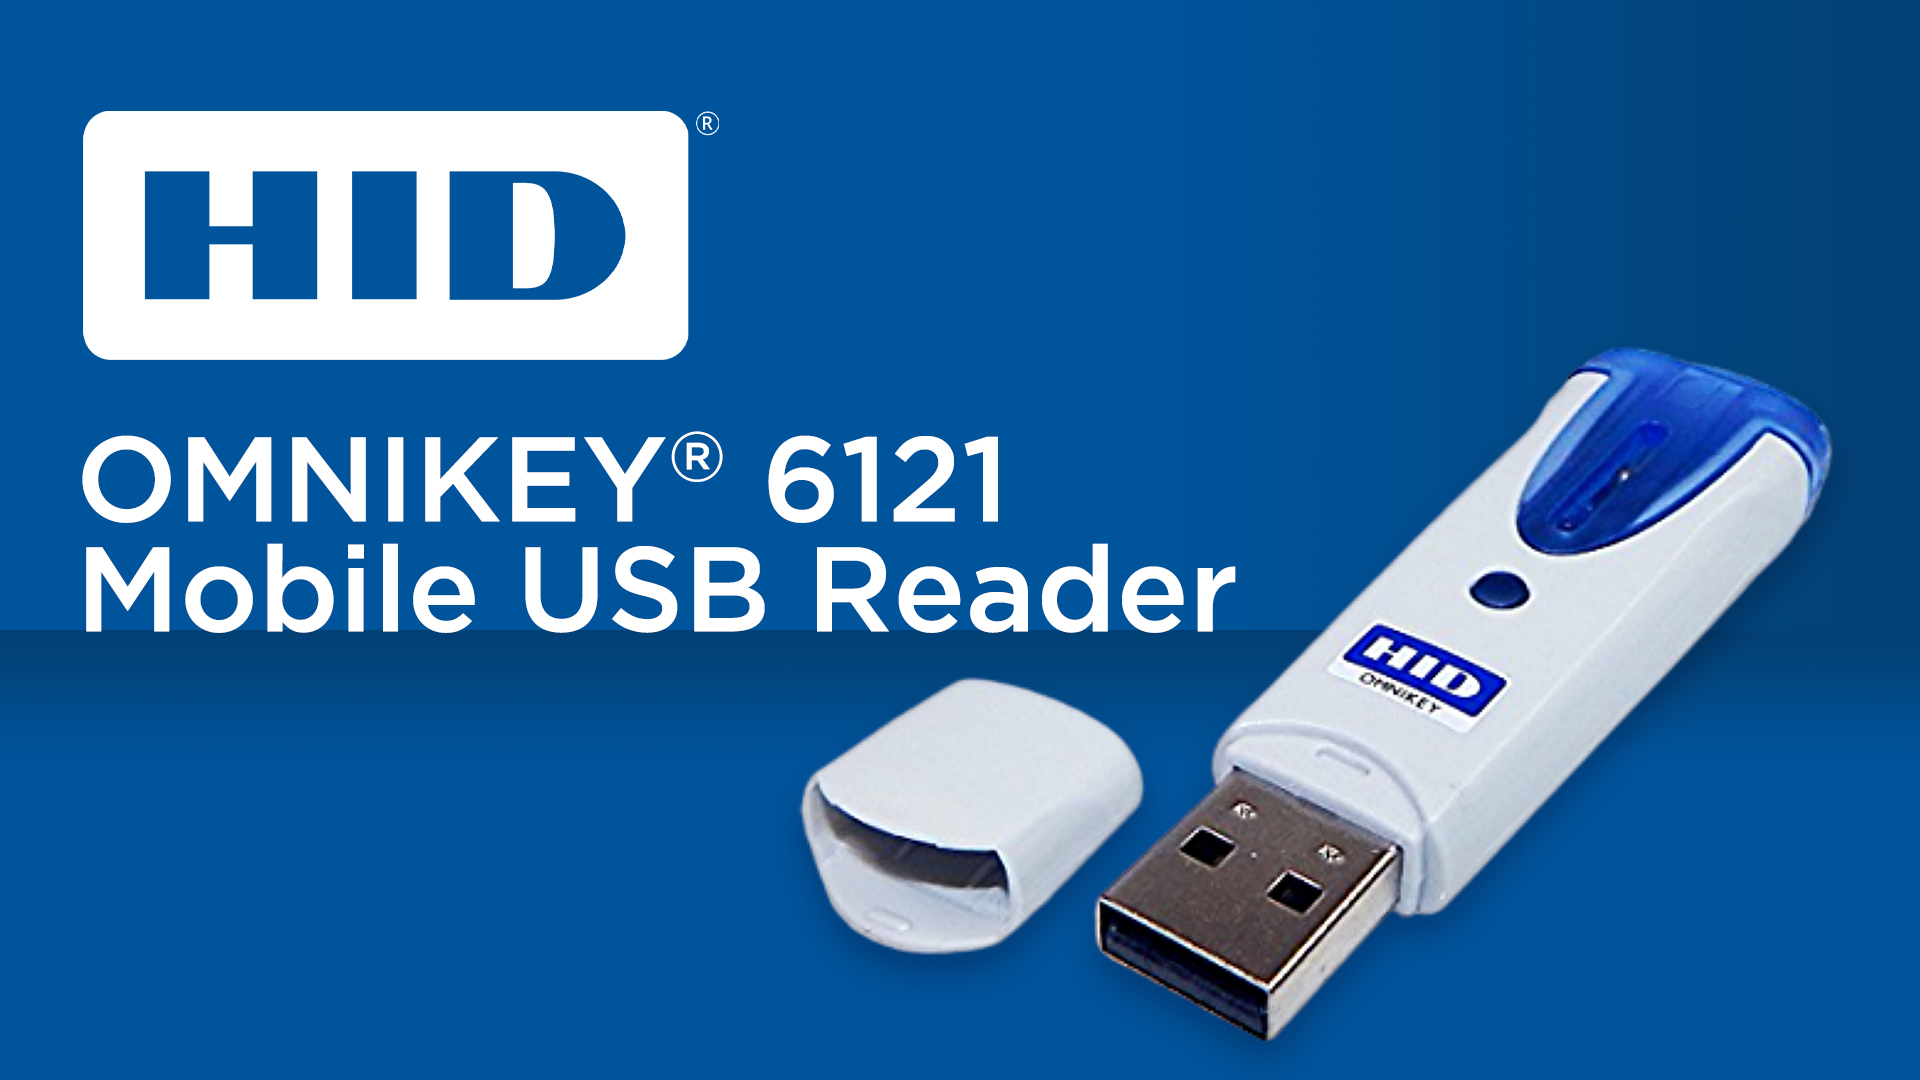 HID Omnikey 6121 Mobile USB Reader